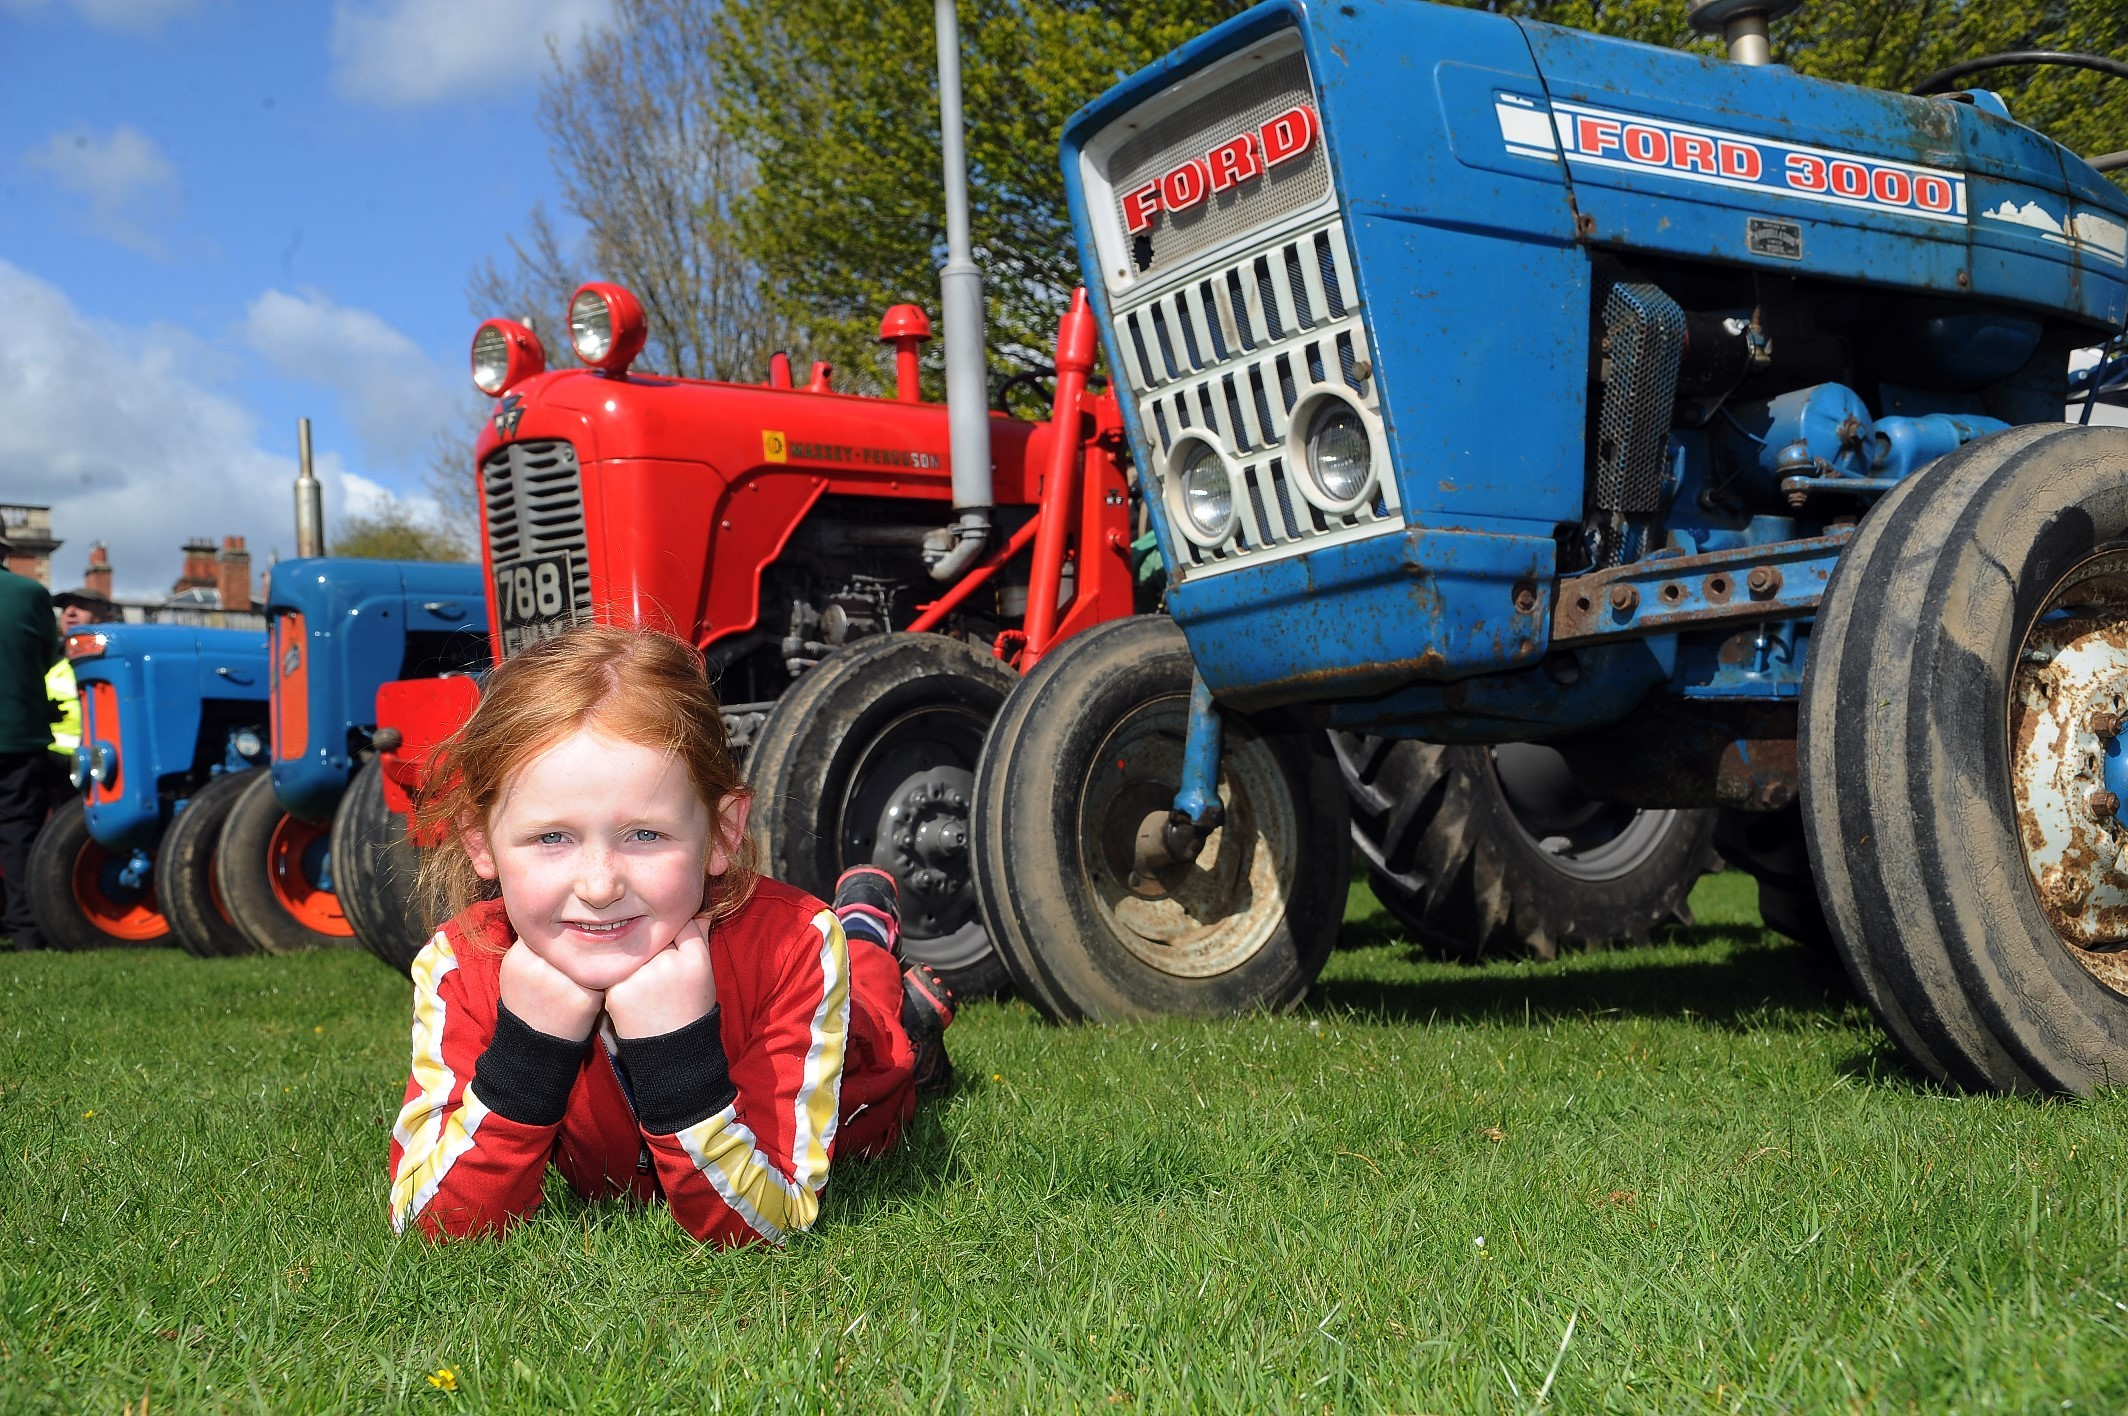 FEST: Young Charlotte Wilson takes a break during this year's Tractor Fest at Newby Hall.